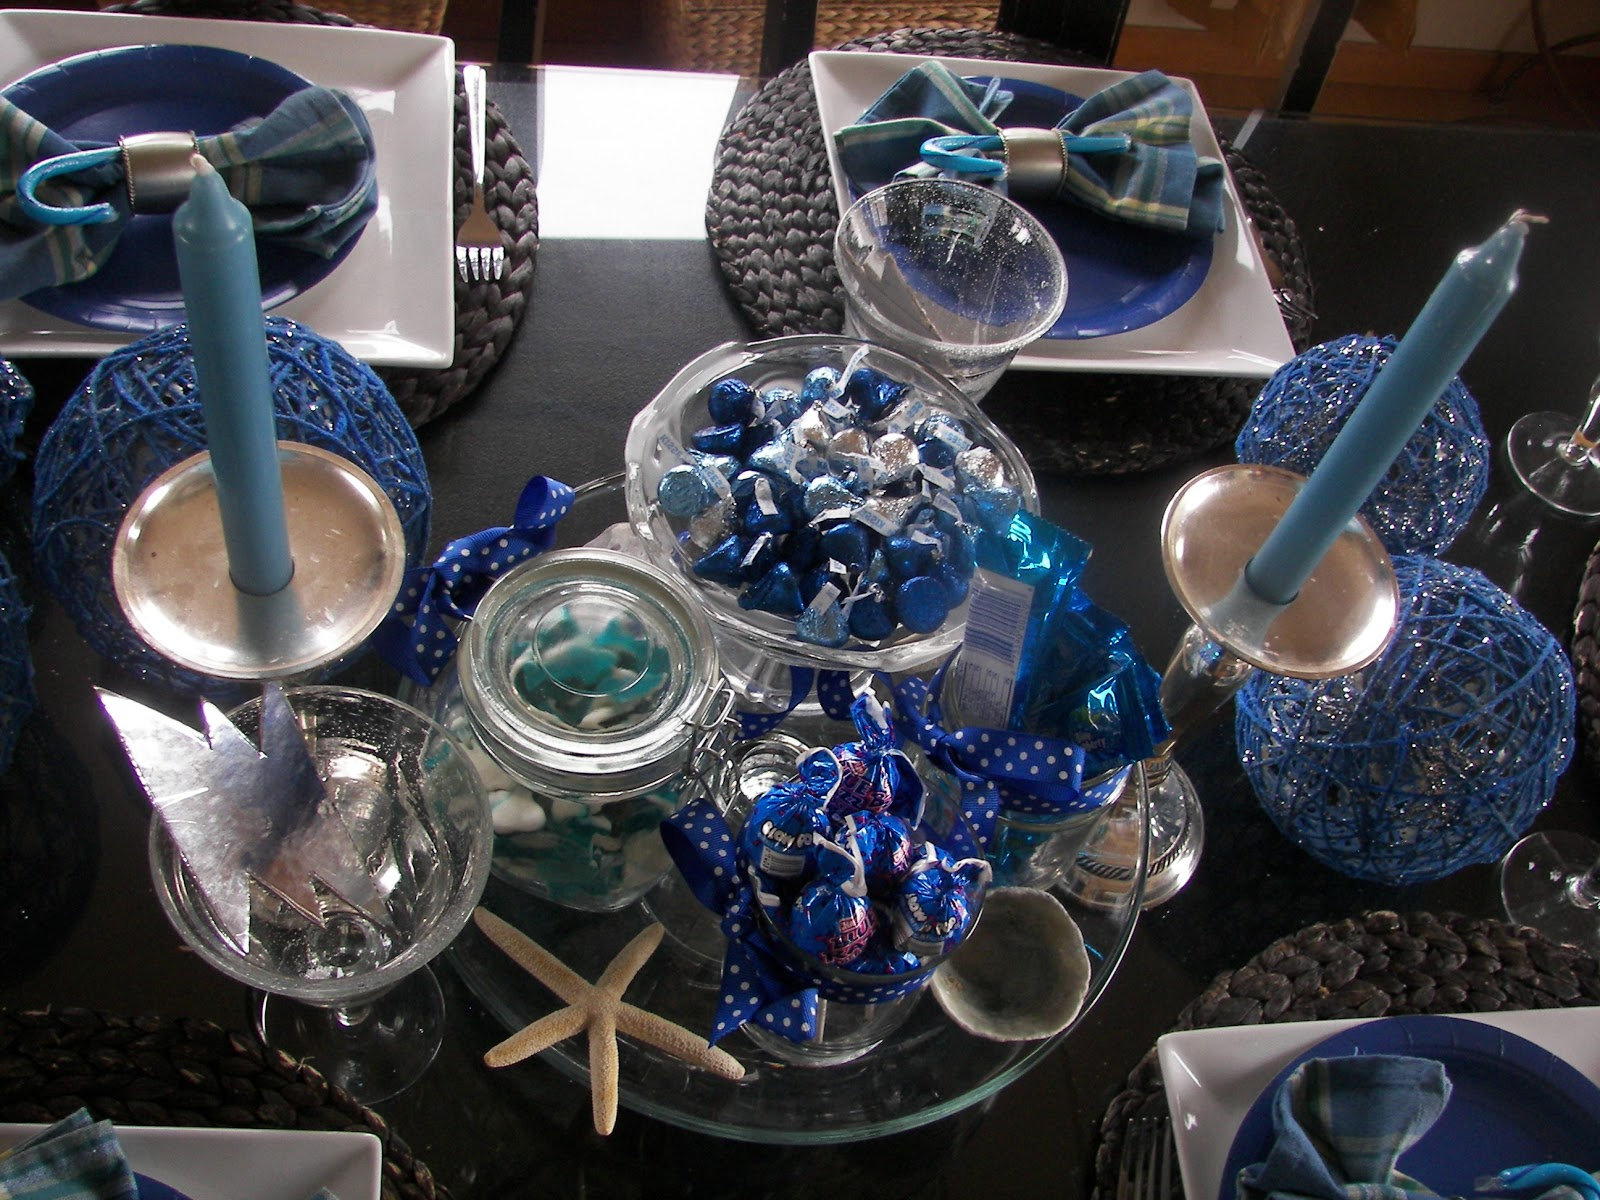 Birthday table decorations for men - Gazebo Wedding Ideas